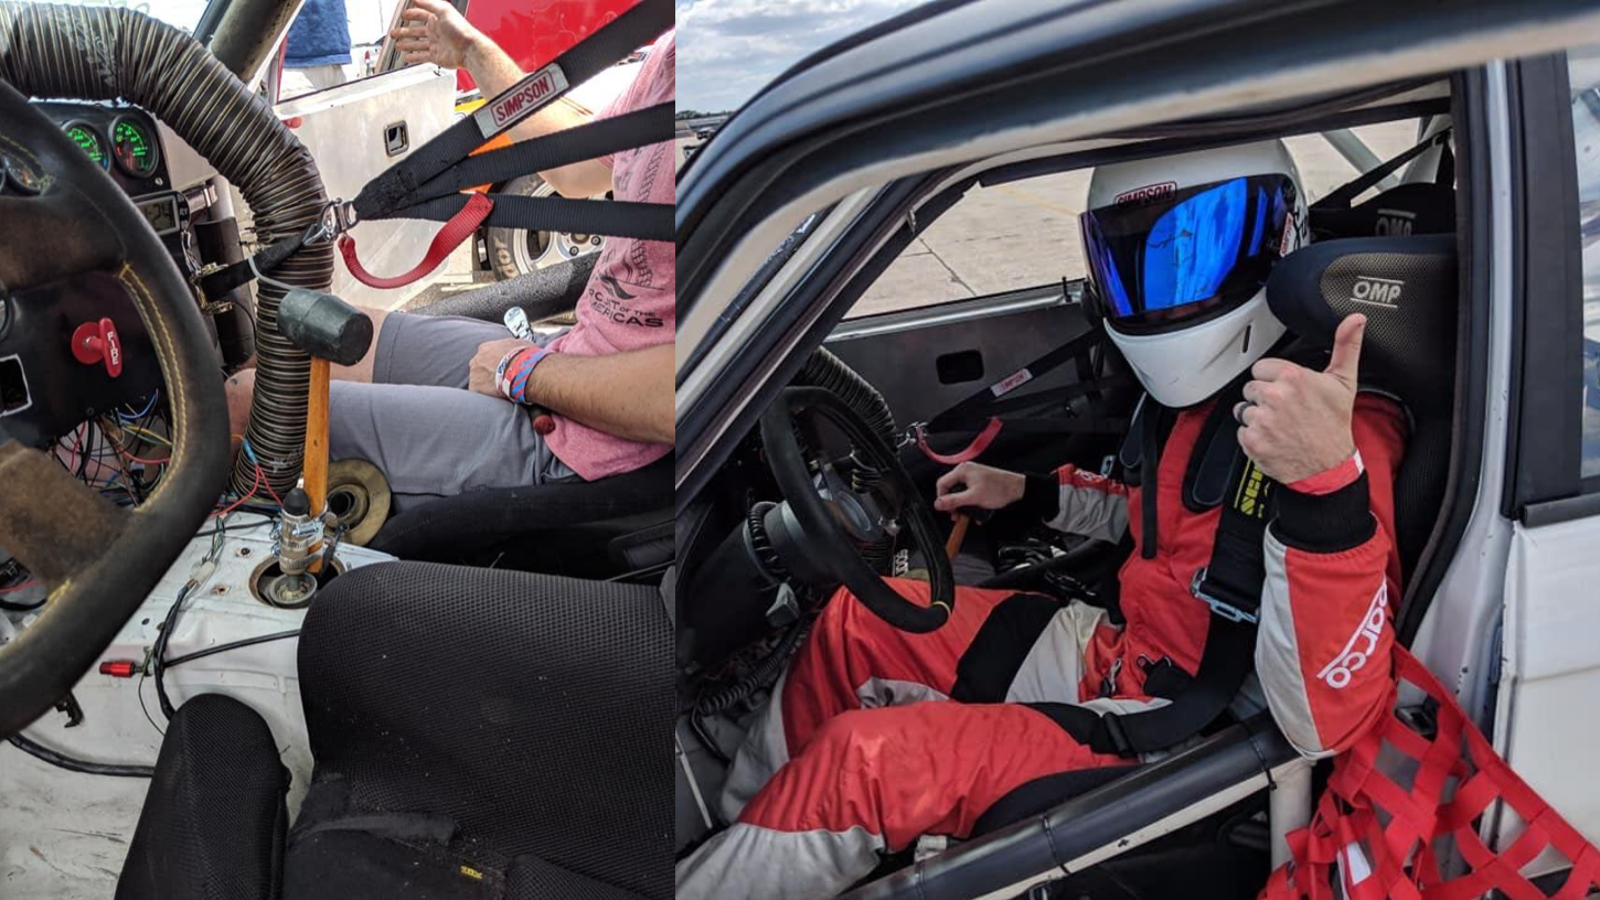 QnA VBage Spec BMW E30 Racer Replaces Broken Shifter With a Rubber Mallet, Wins